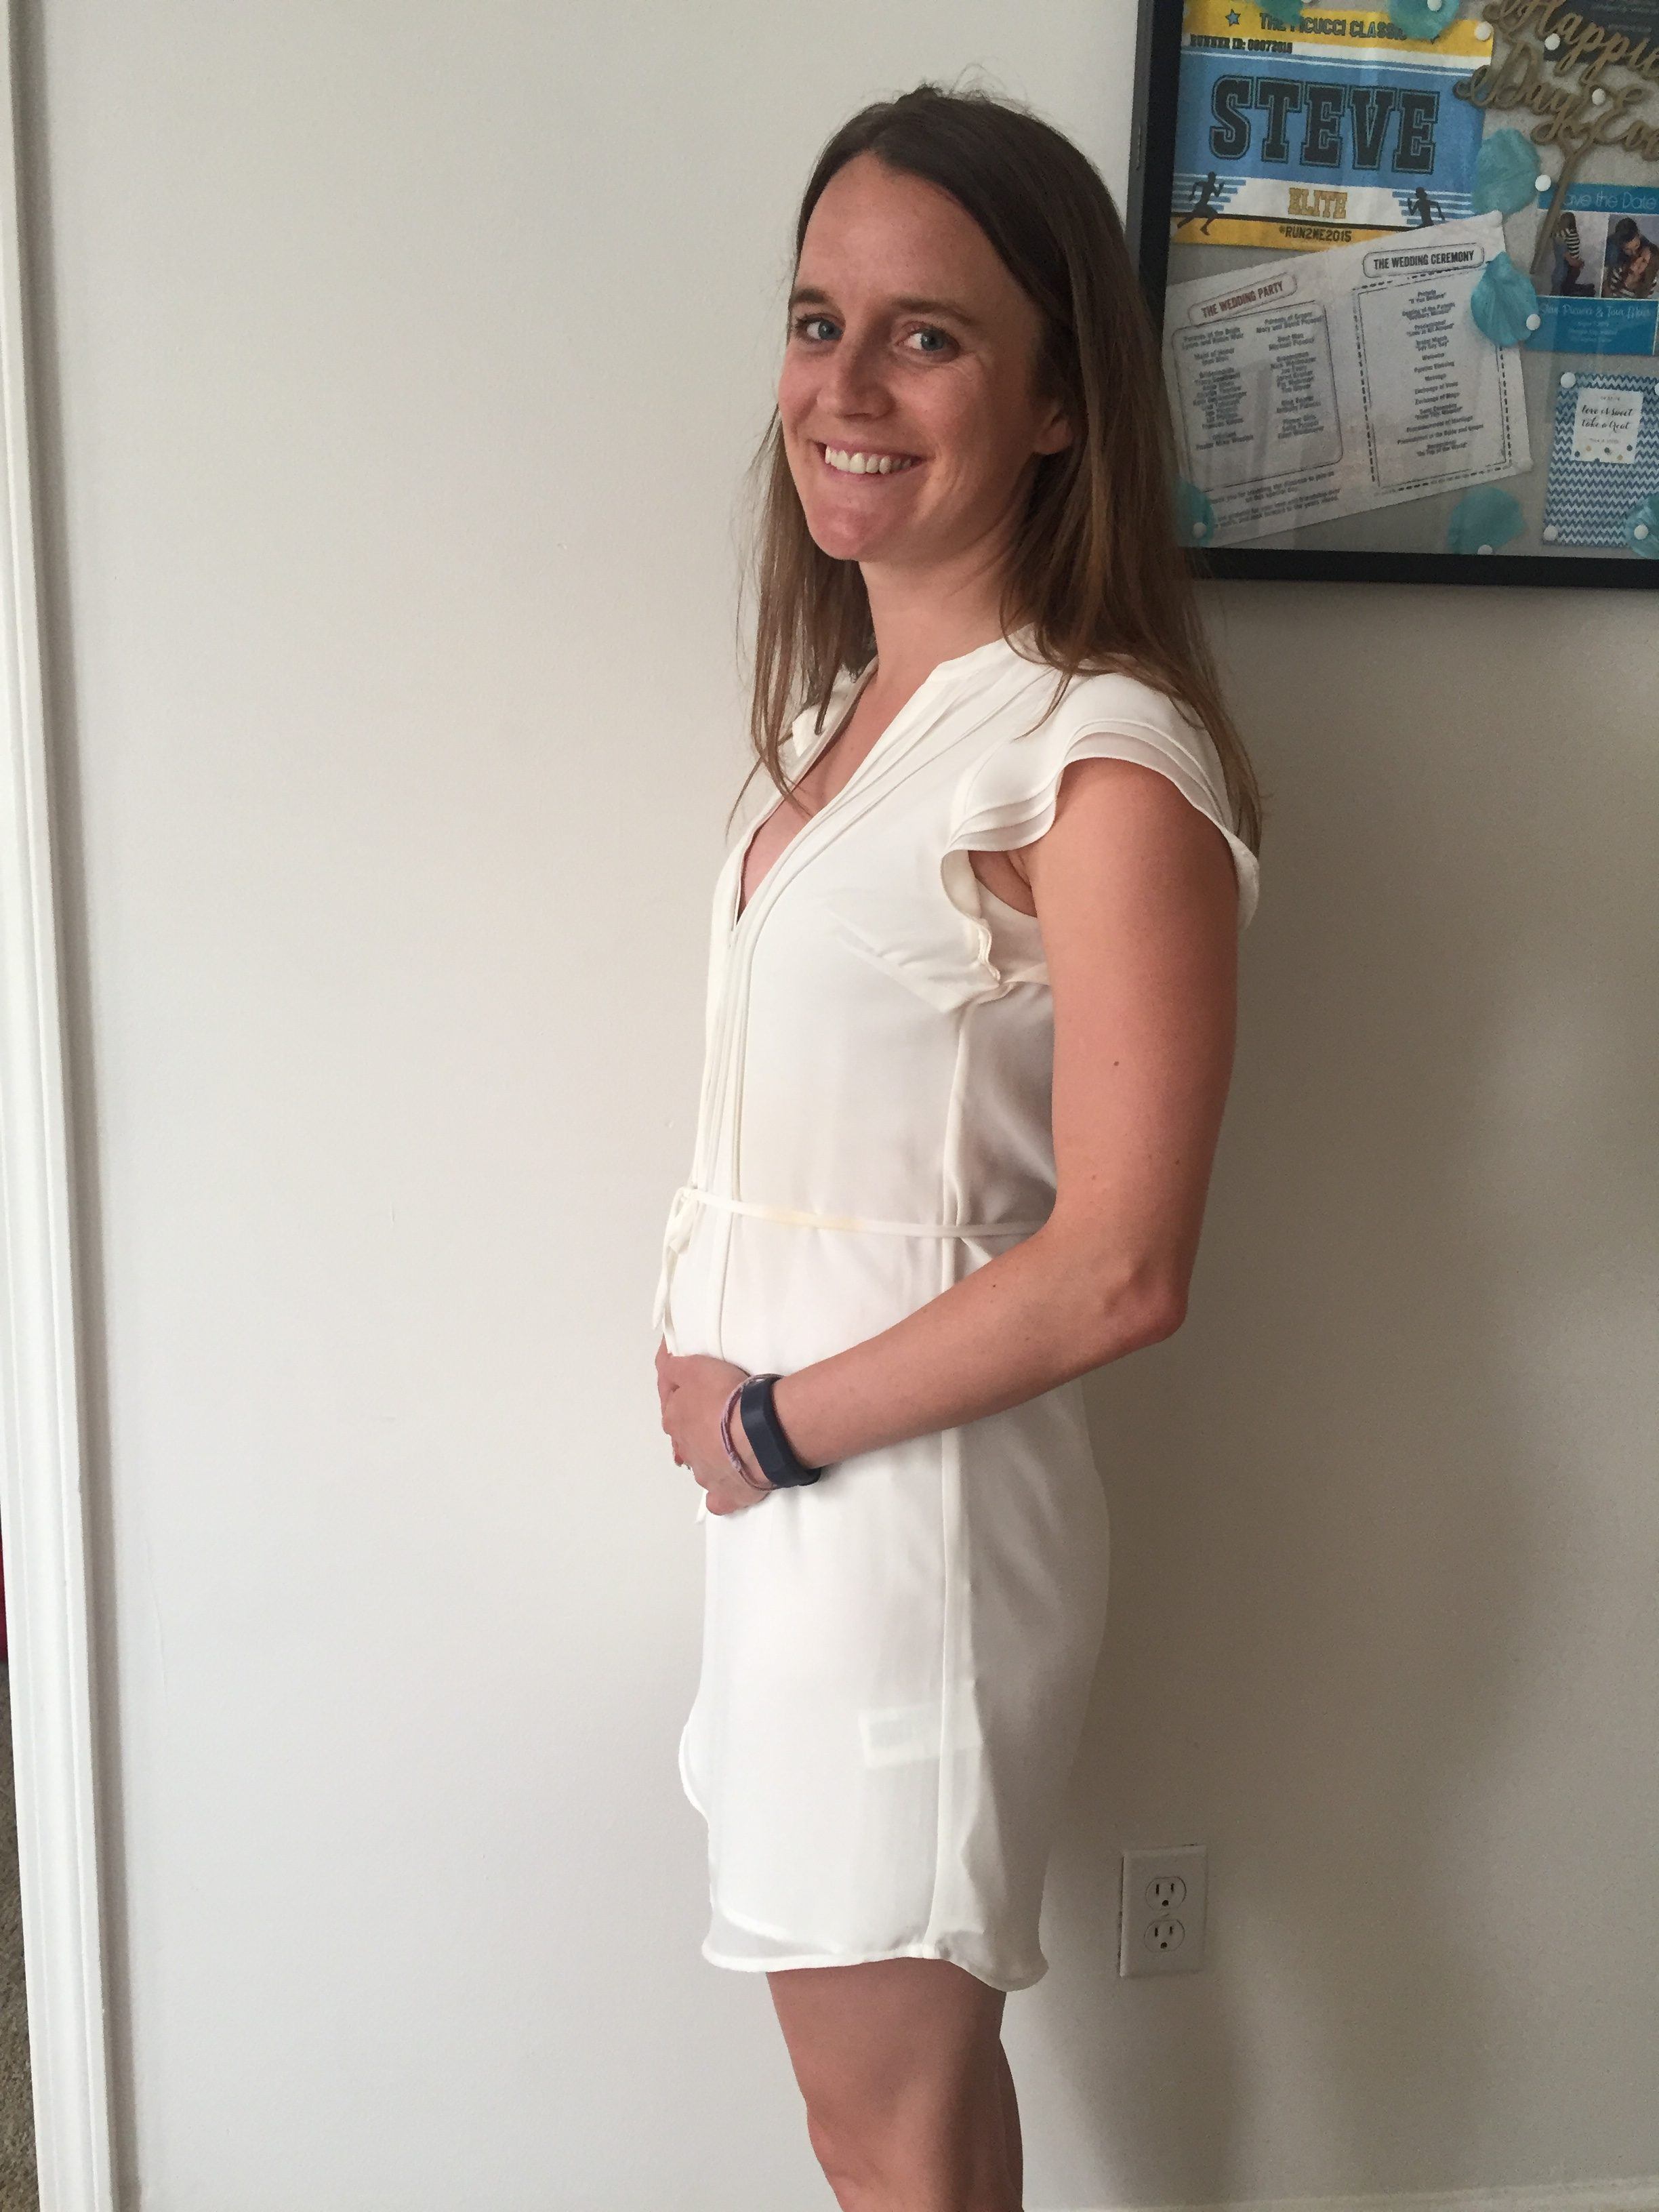 Fears and Paranoia in Early Pregnancy